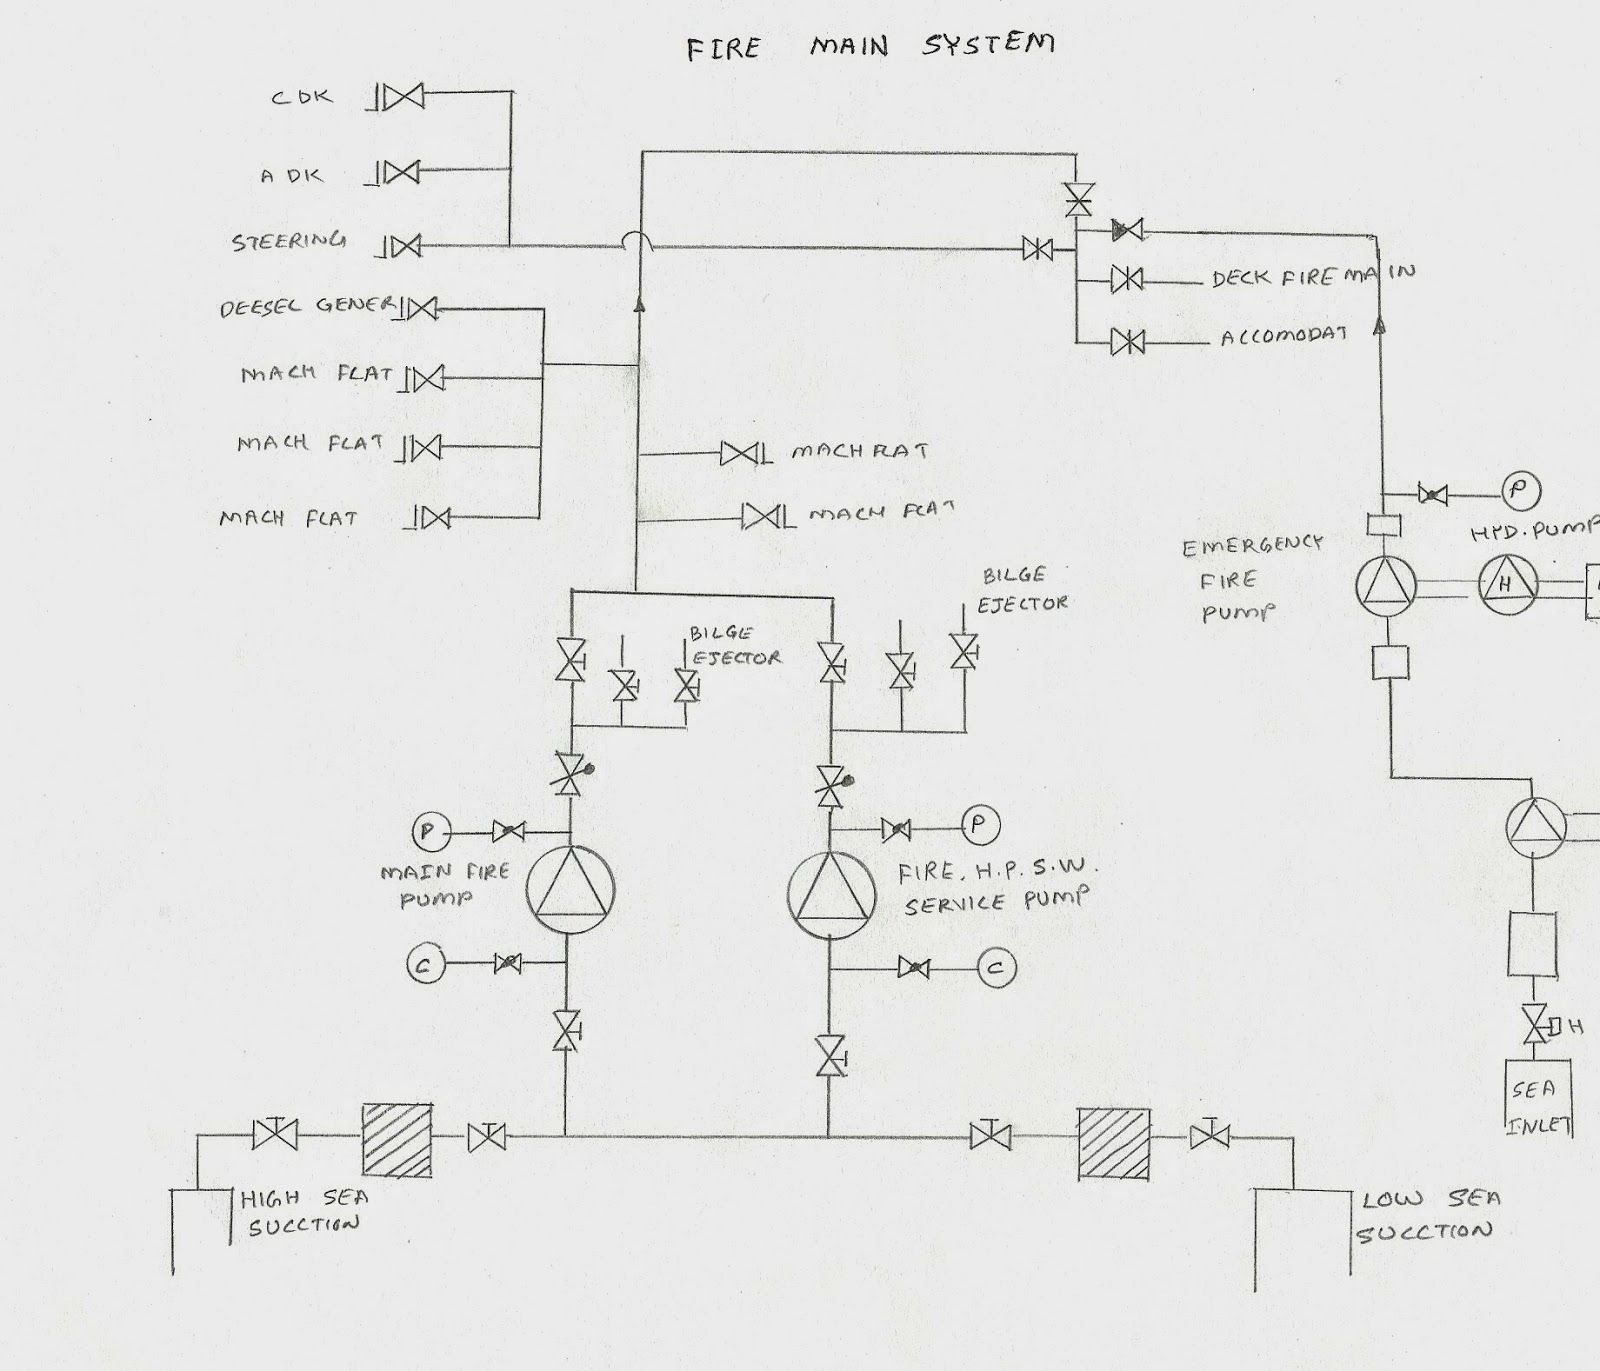 hight resolution of these line diagrams vary from ship to ship this may give you a general idea how to draw a line diagram in your tar book to identify various parts